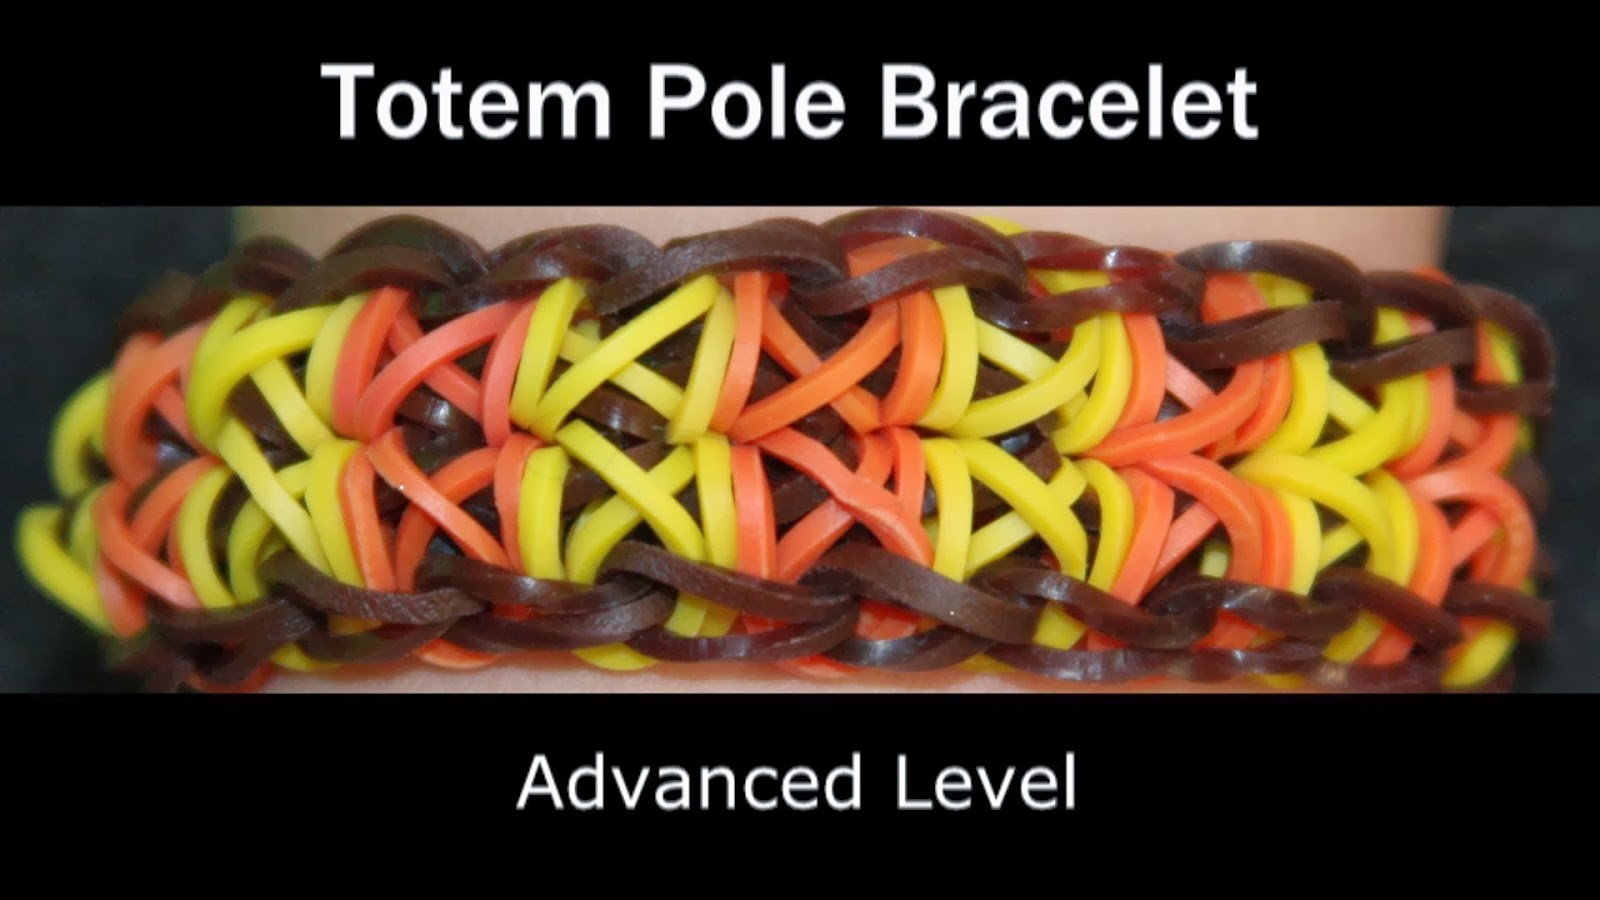 Totem pole research paper